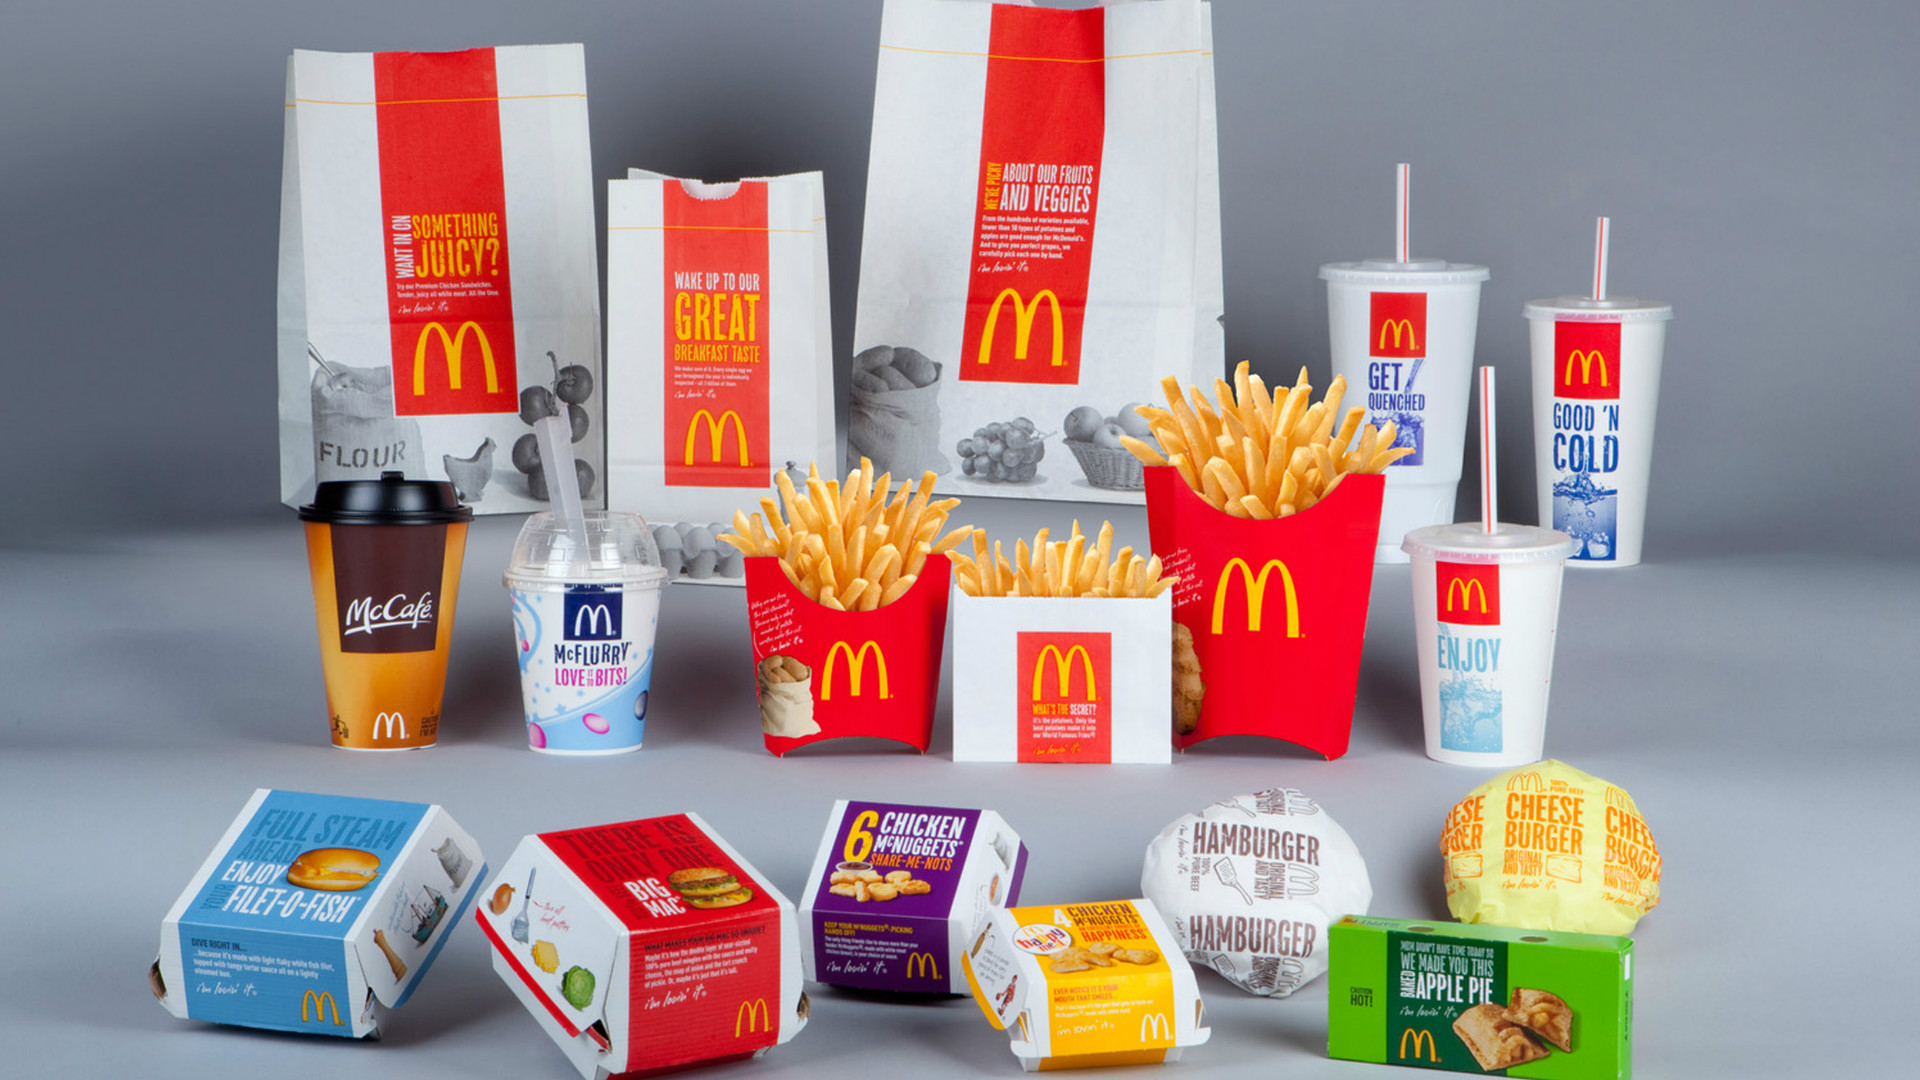 McDonald's entire range